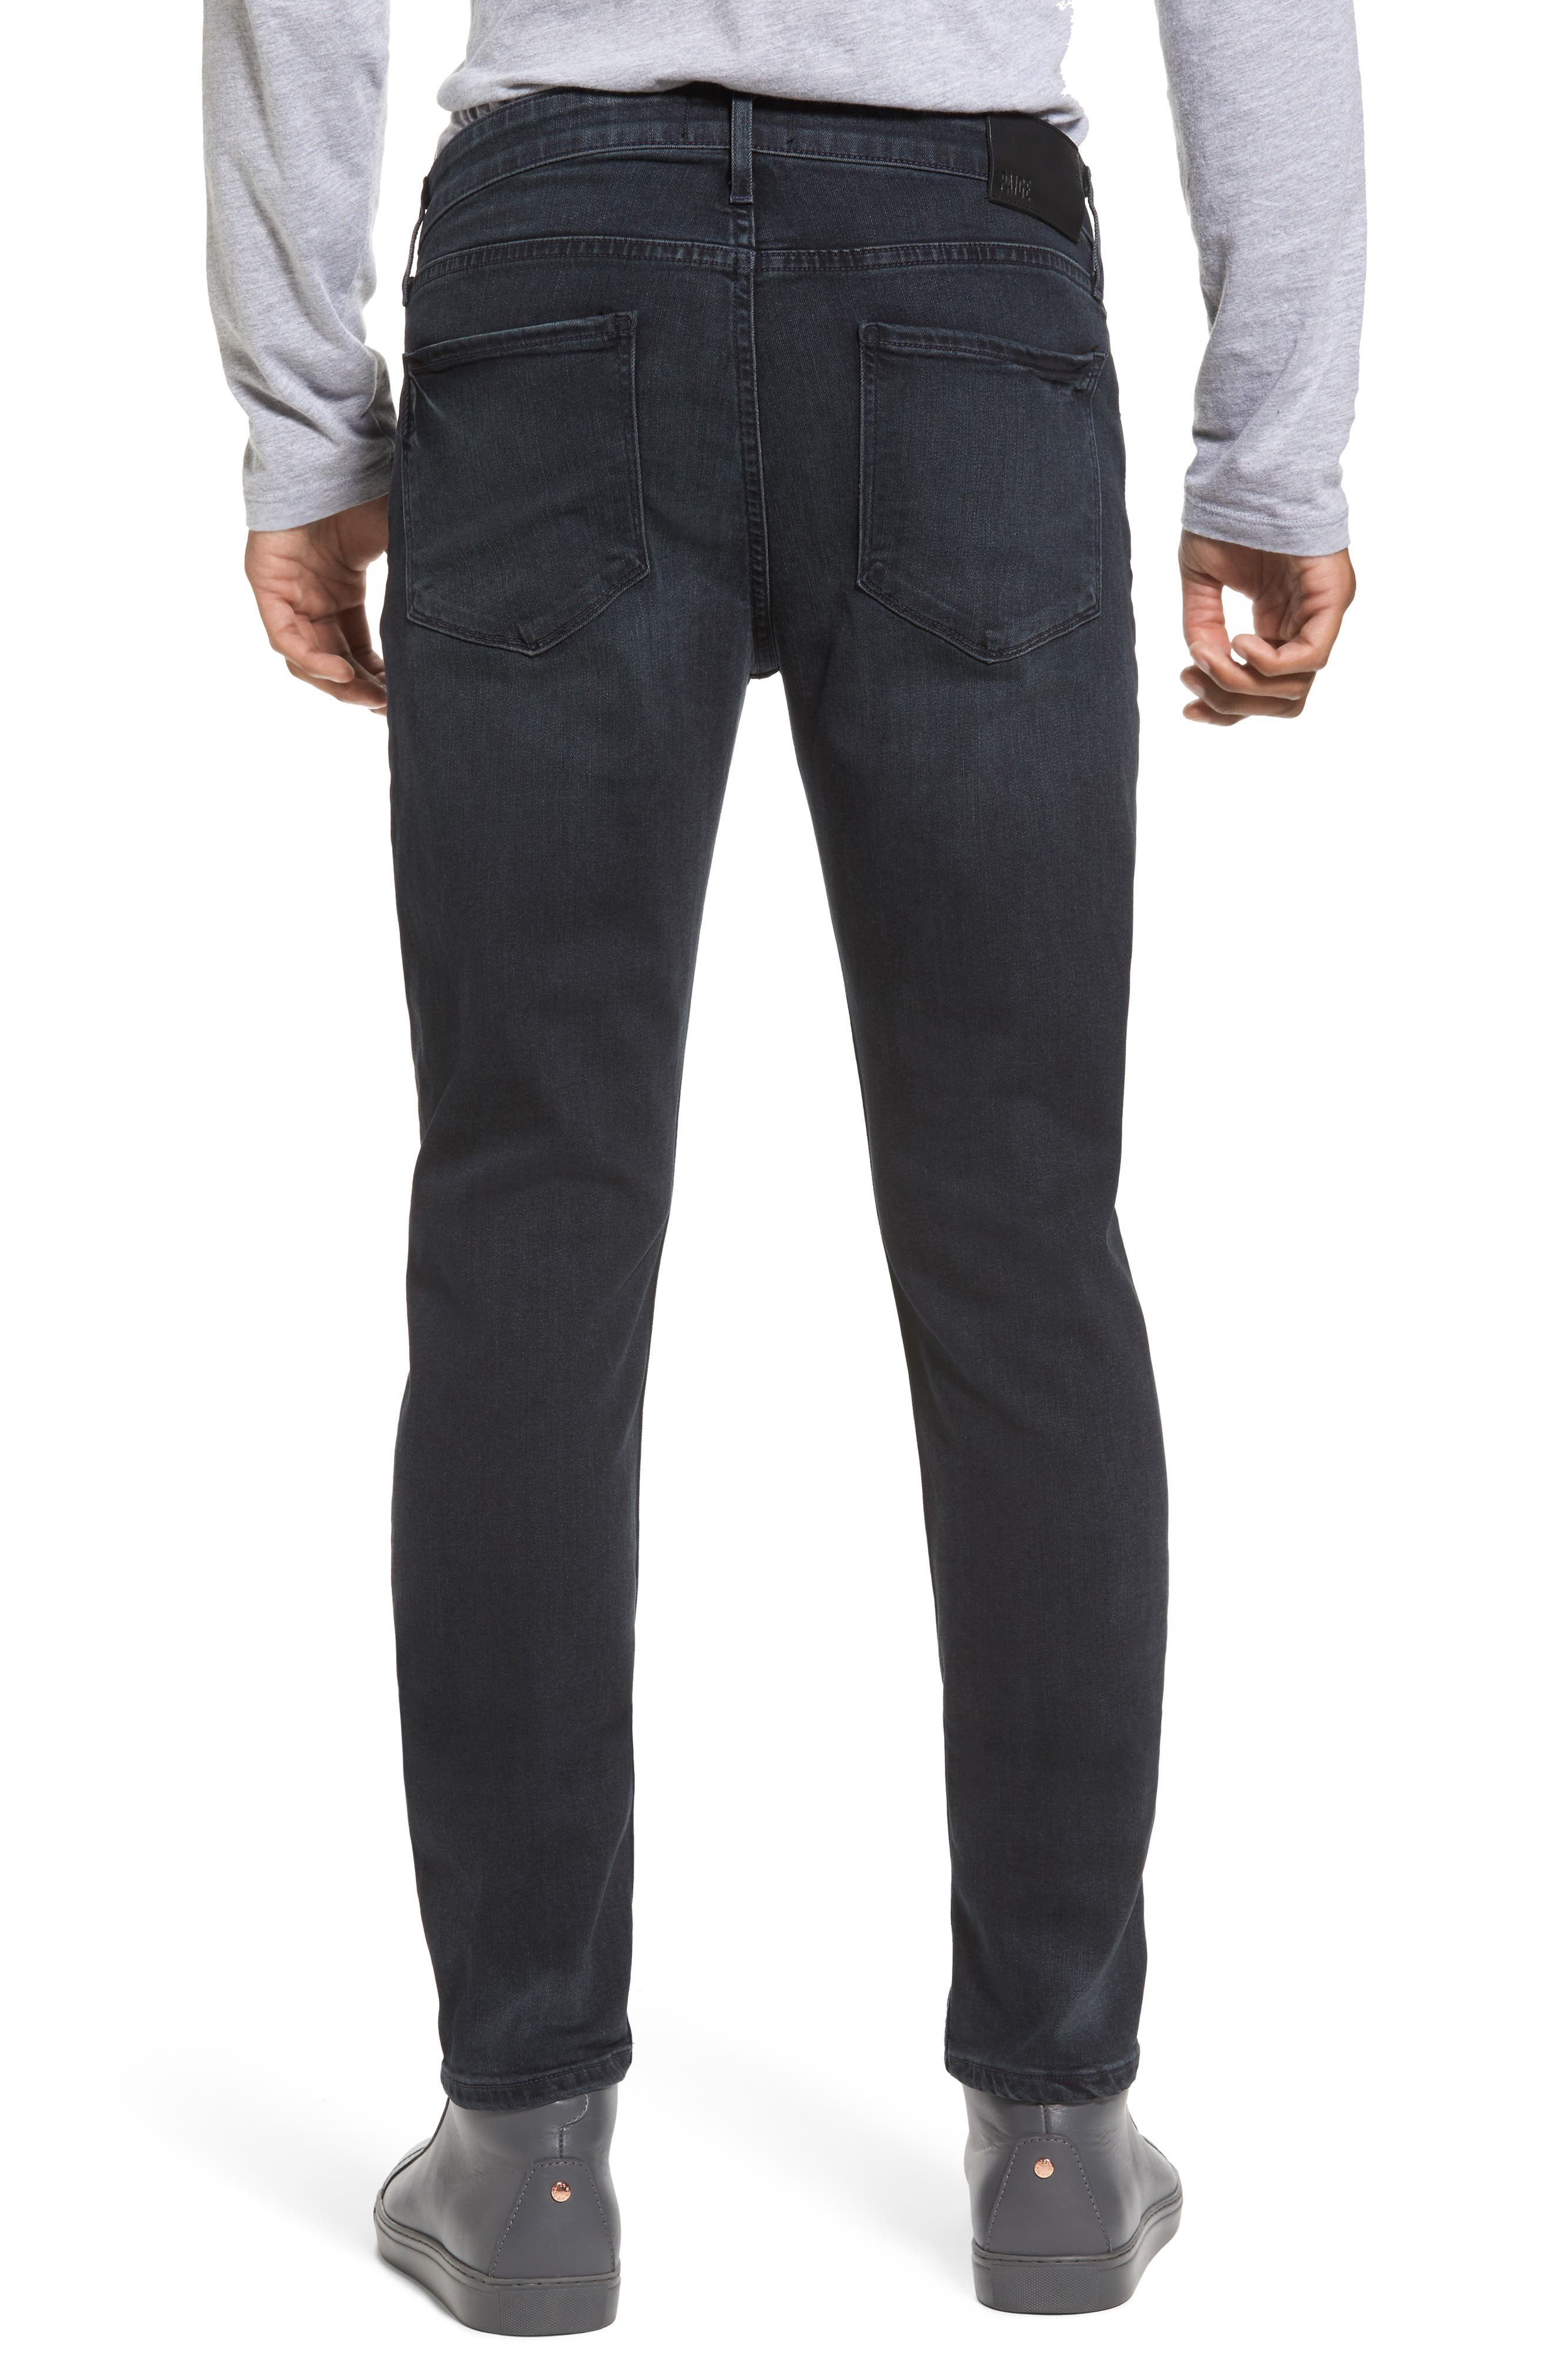 Transcend - Croft Skinny Fit Jeans,                             Alternate thumbnail 2, color,                             BECKETT